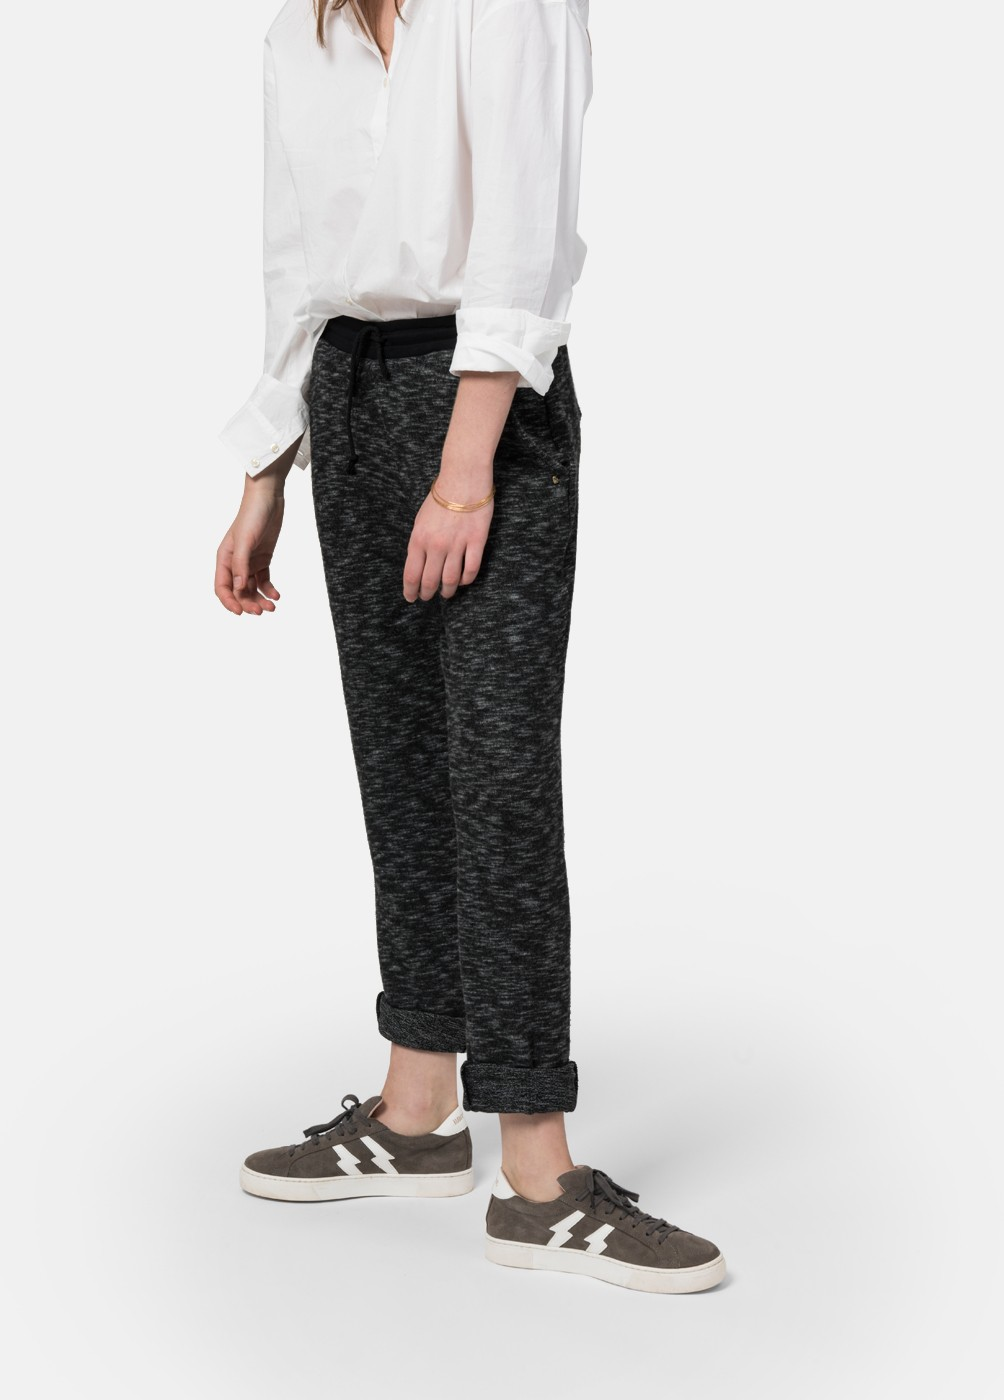 PANTALON CONFORT LARGO PERCHADO CONFORT